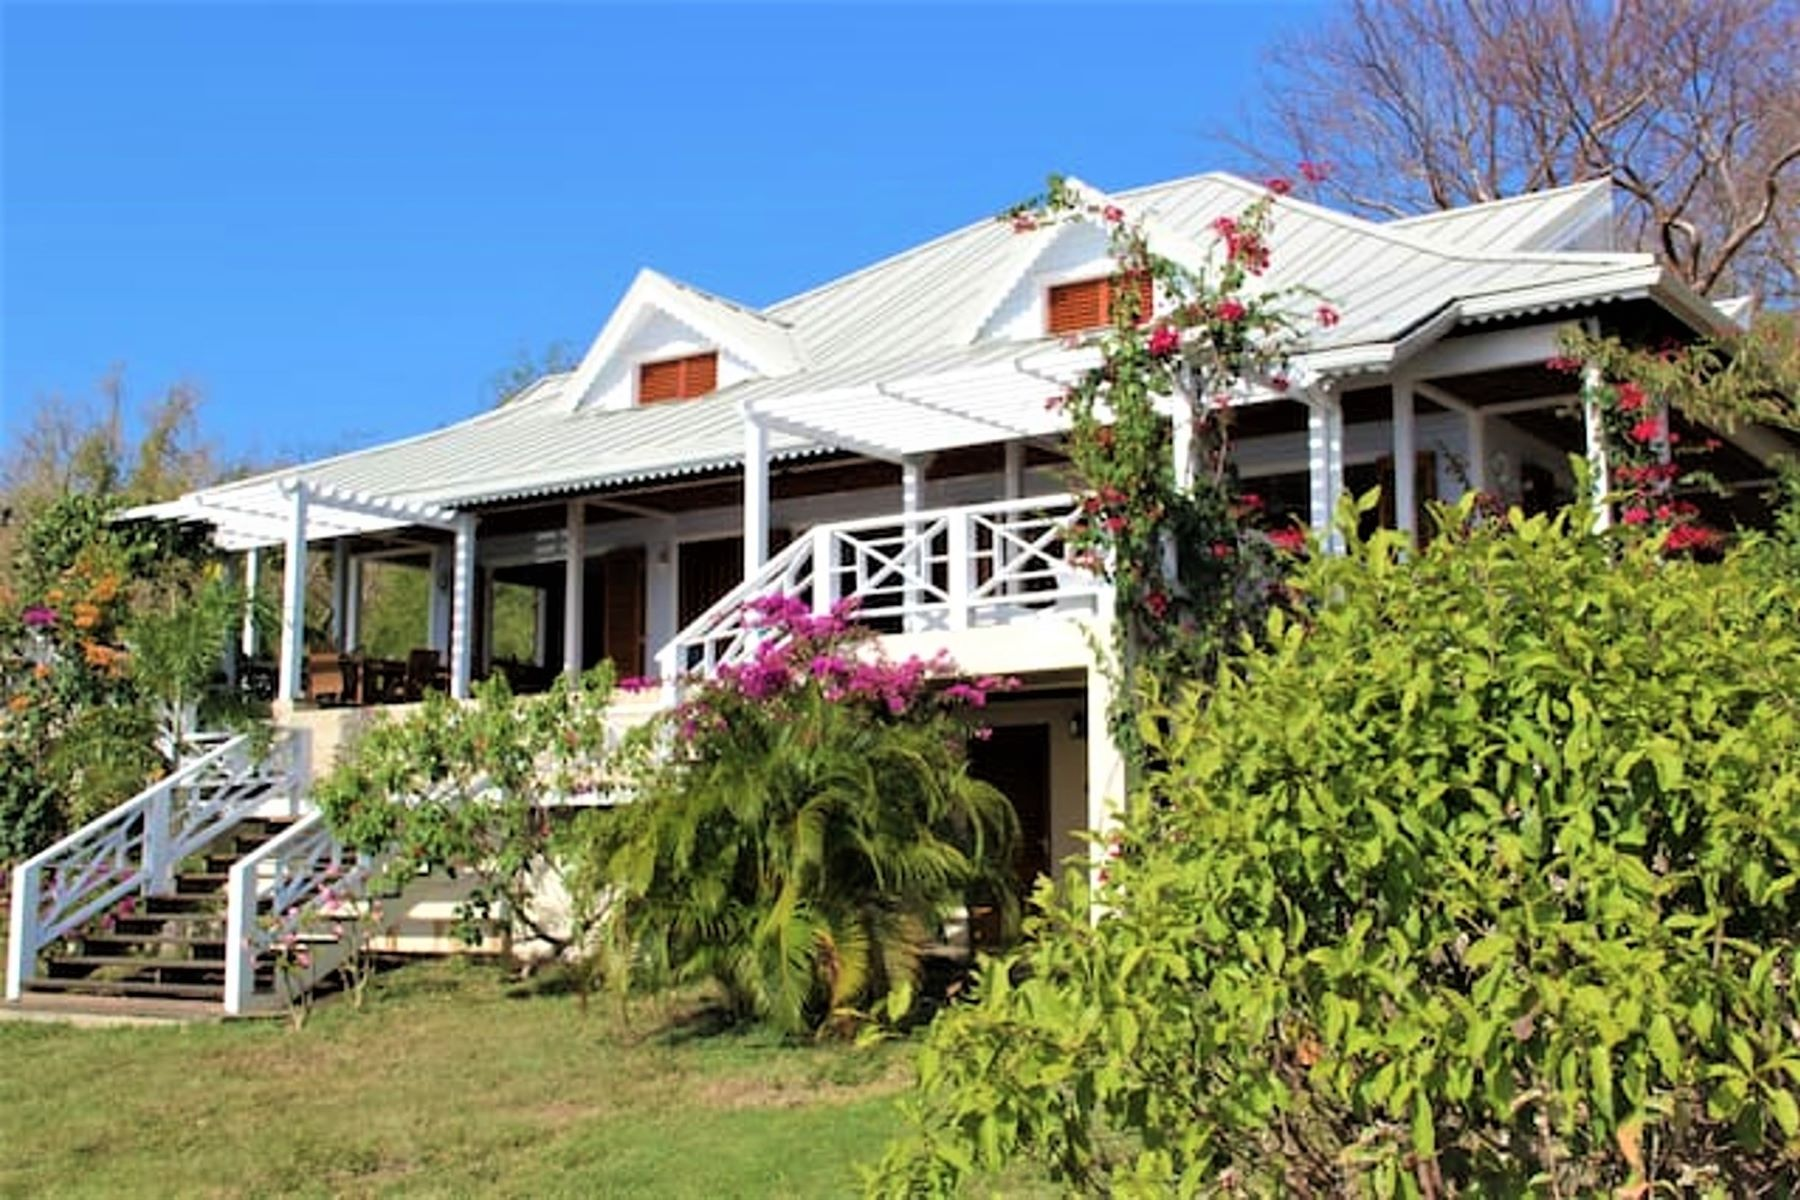 Single Family Home for Rent at LaPagerie Cities In Saint Vincent And The Grenadines, Saint Vincent And The Grenadines